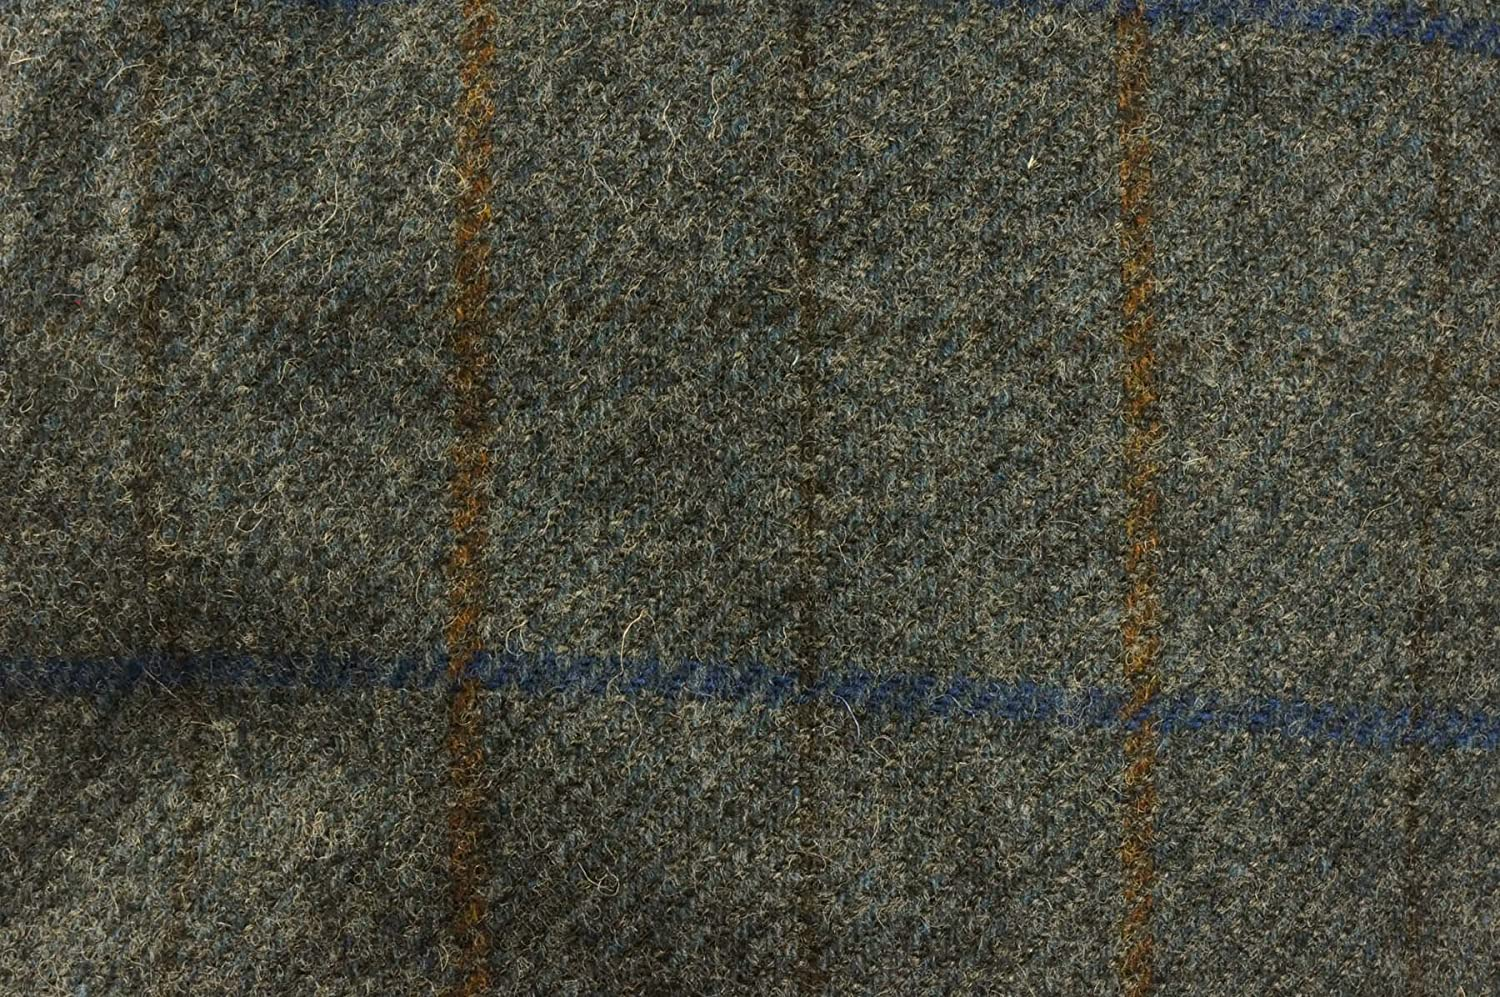 cb7928721e Quality English Tweed Cap Earland Brothers Hats 100/% Wool Moon ...